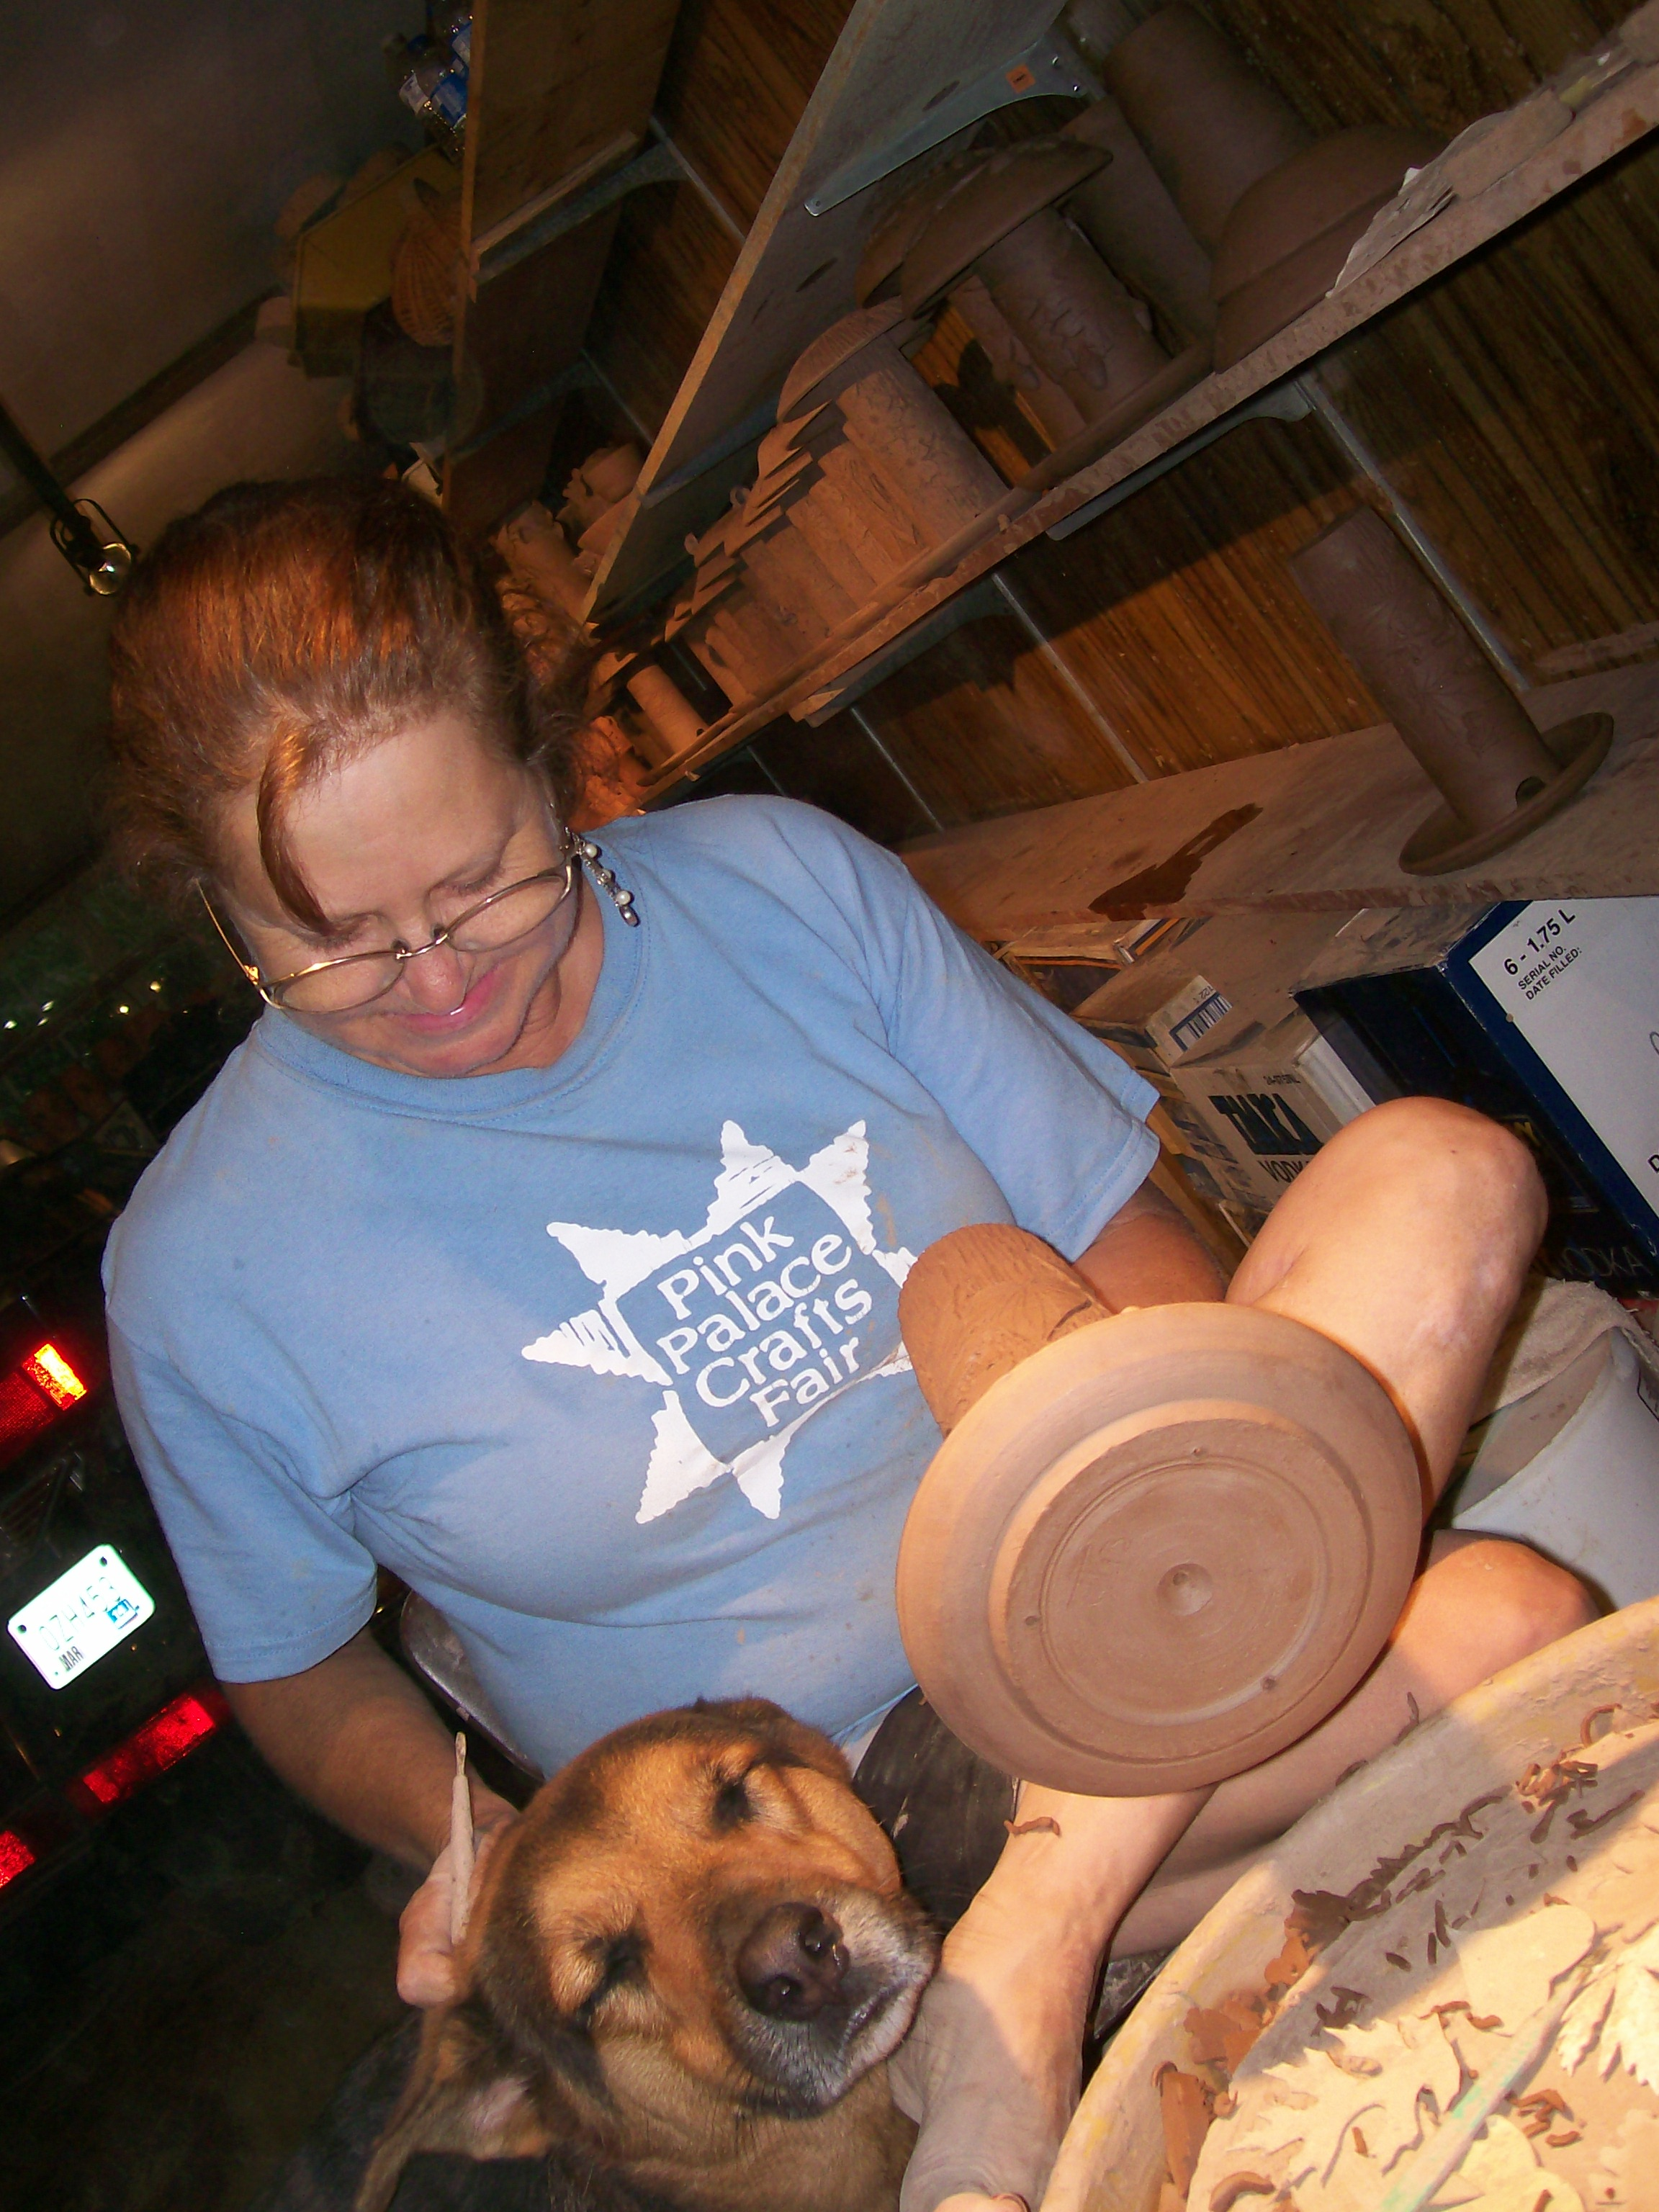 Maggie petting the pottery dog